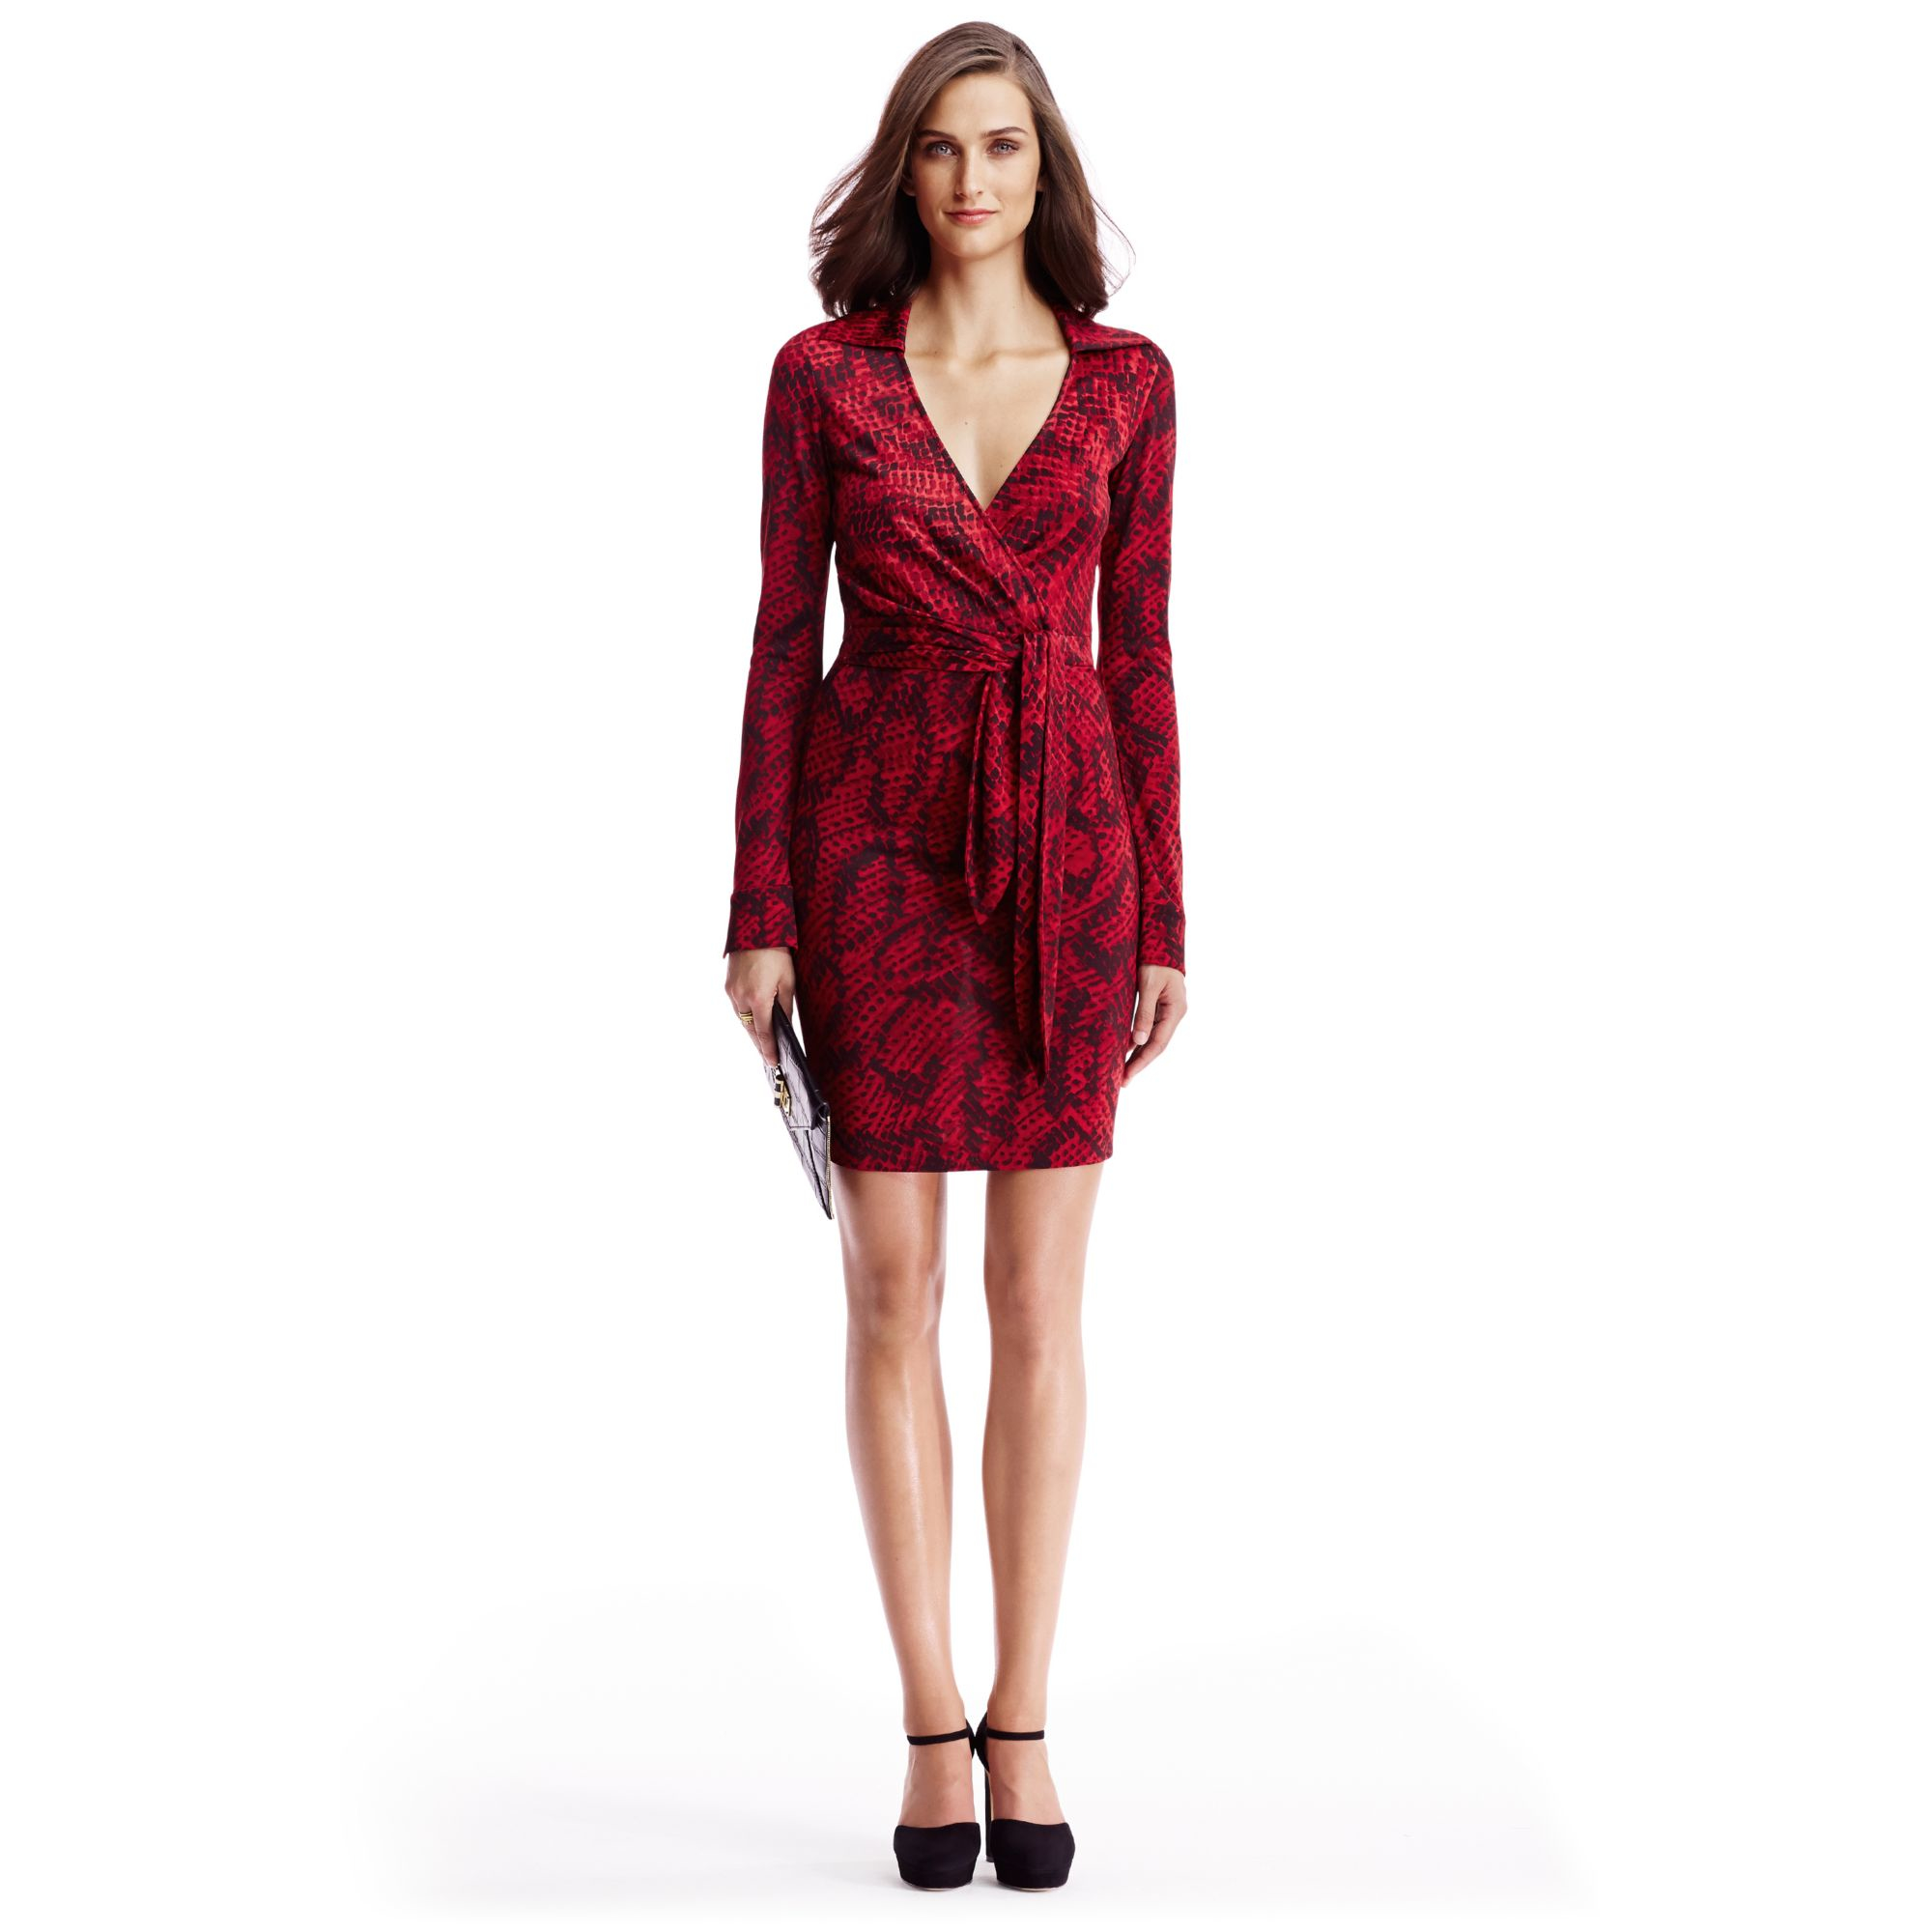 Diane von furstenberg Dvf Savannah Silk Jersey Dress in Red | Lyst